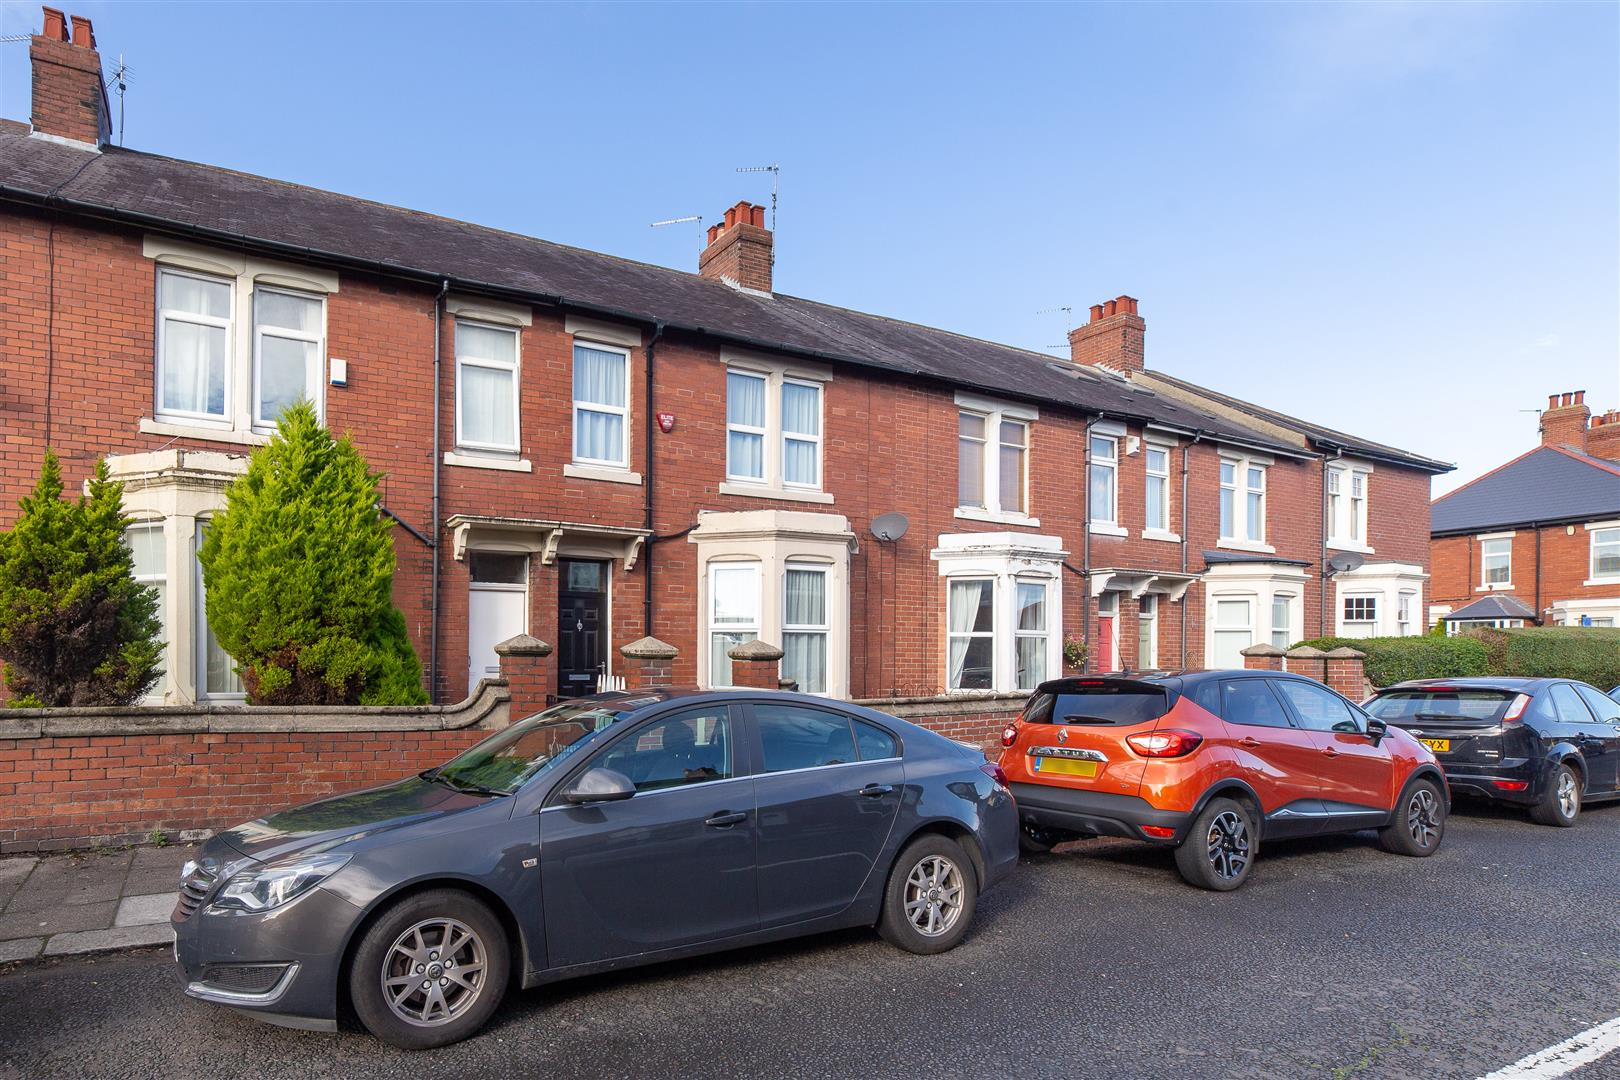 3 bed terraced house for sale in Newcastle Upon Tyne, NE6 5SQ  - Property Image 1